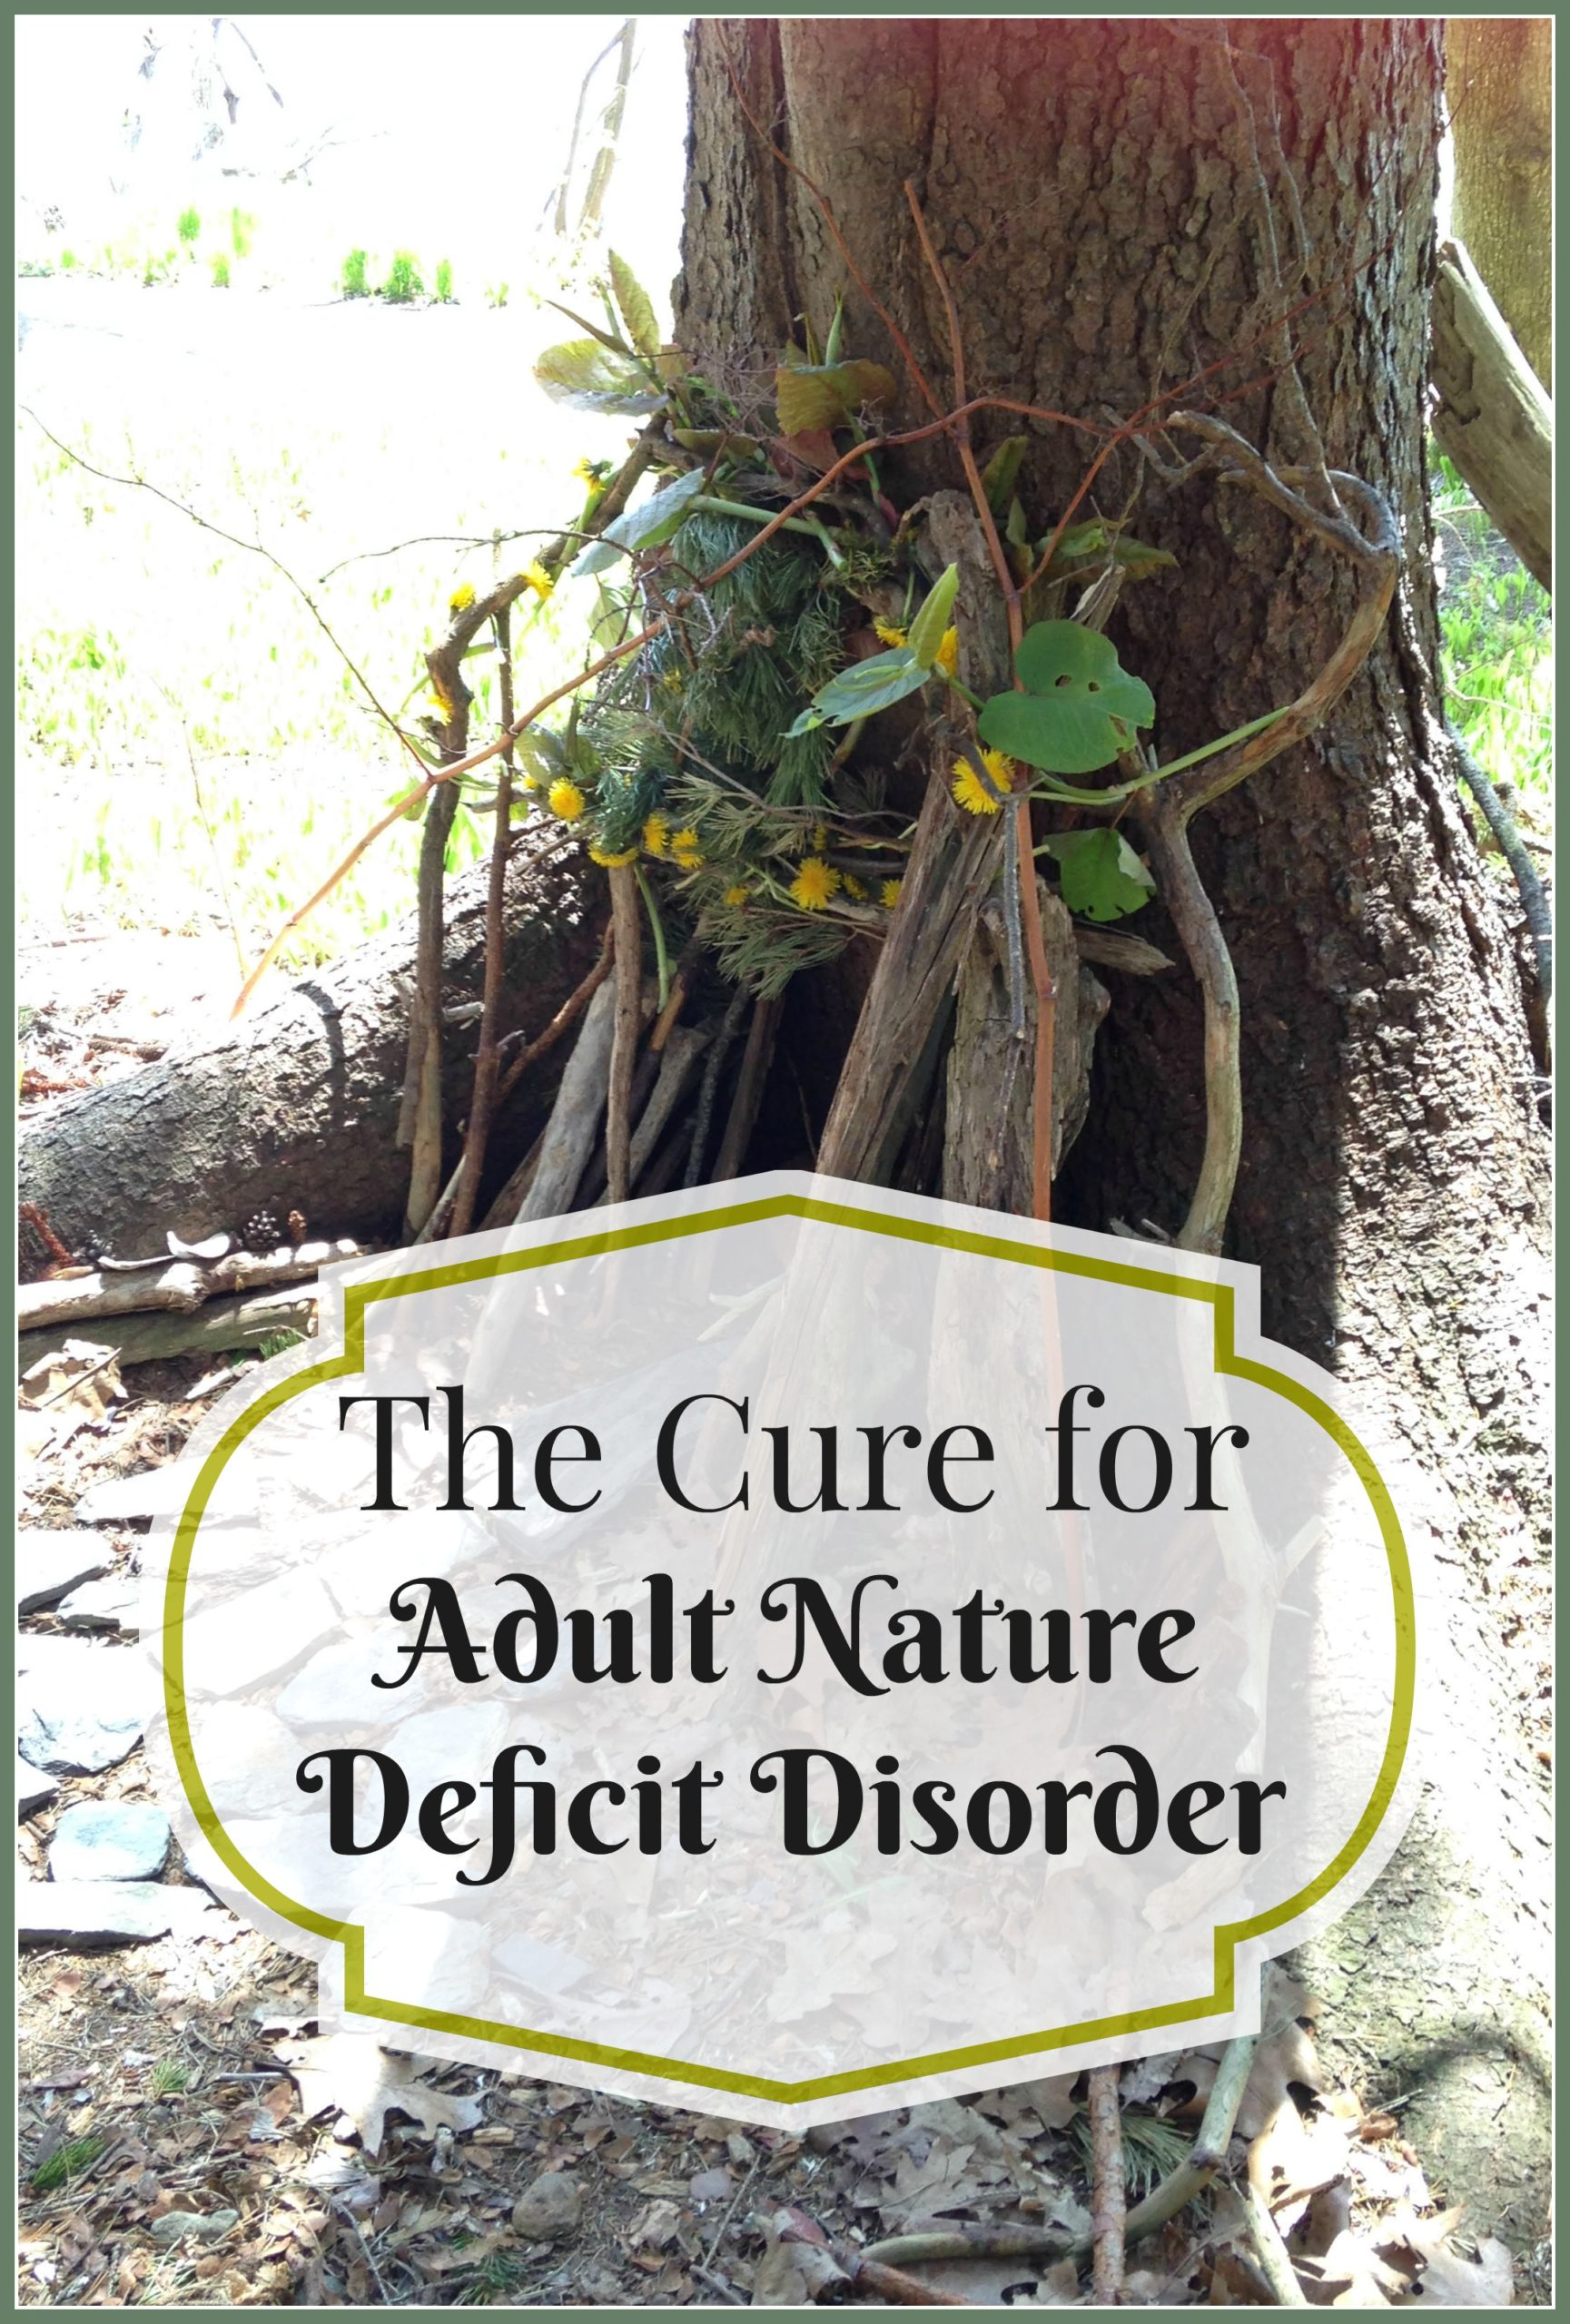 Adult Nature Deficit Disorder…and the Cure #GetOutside